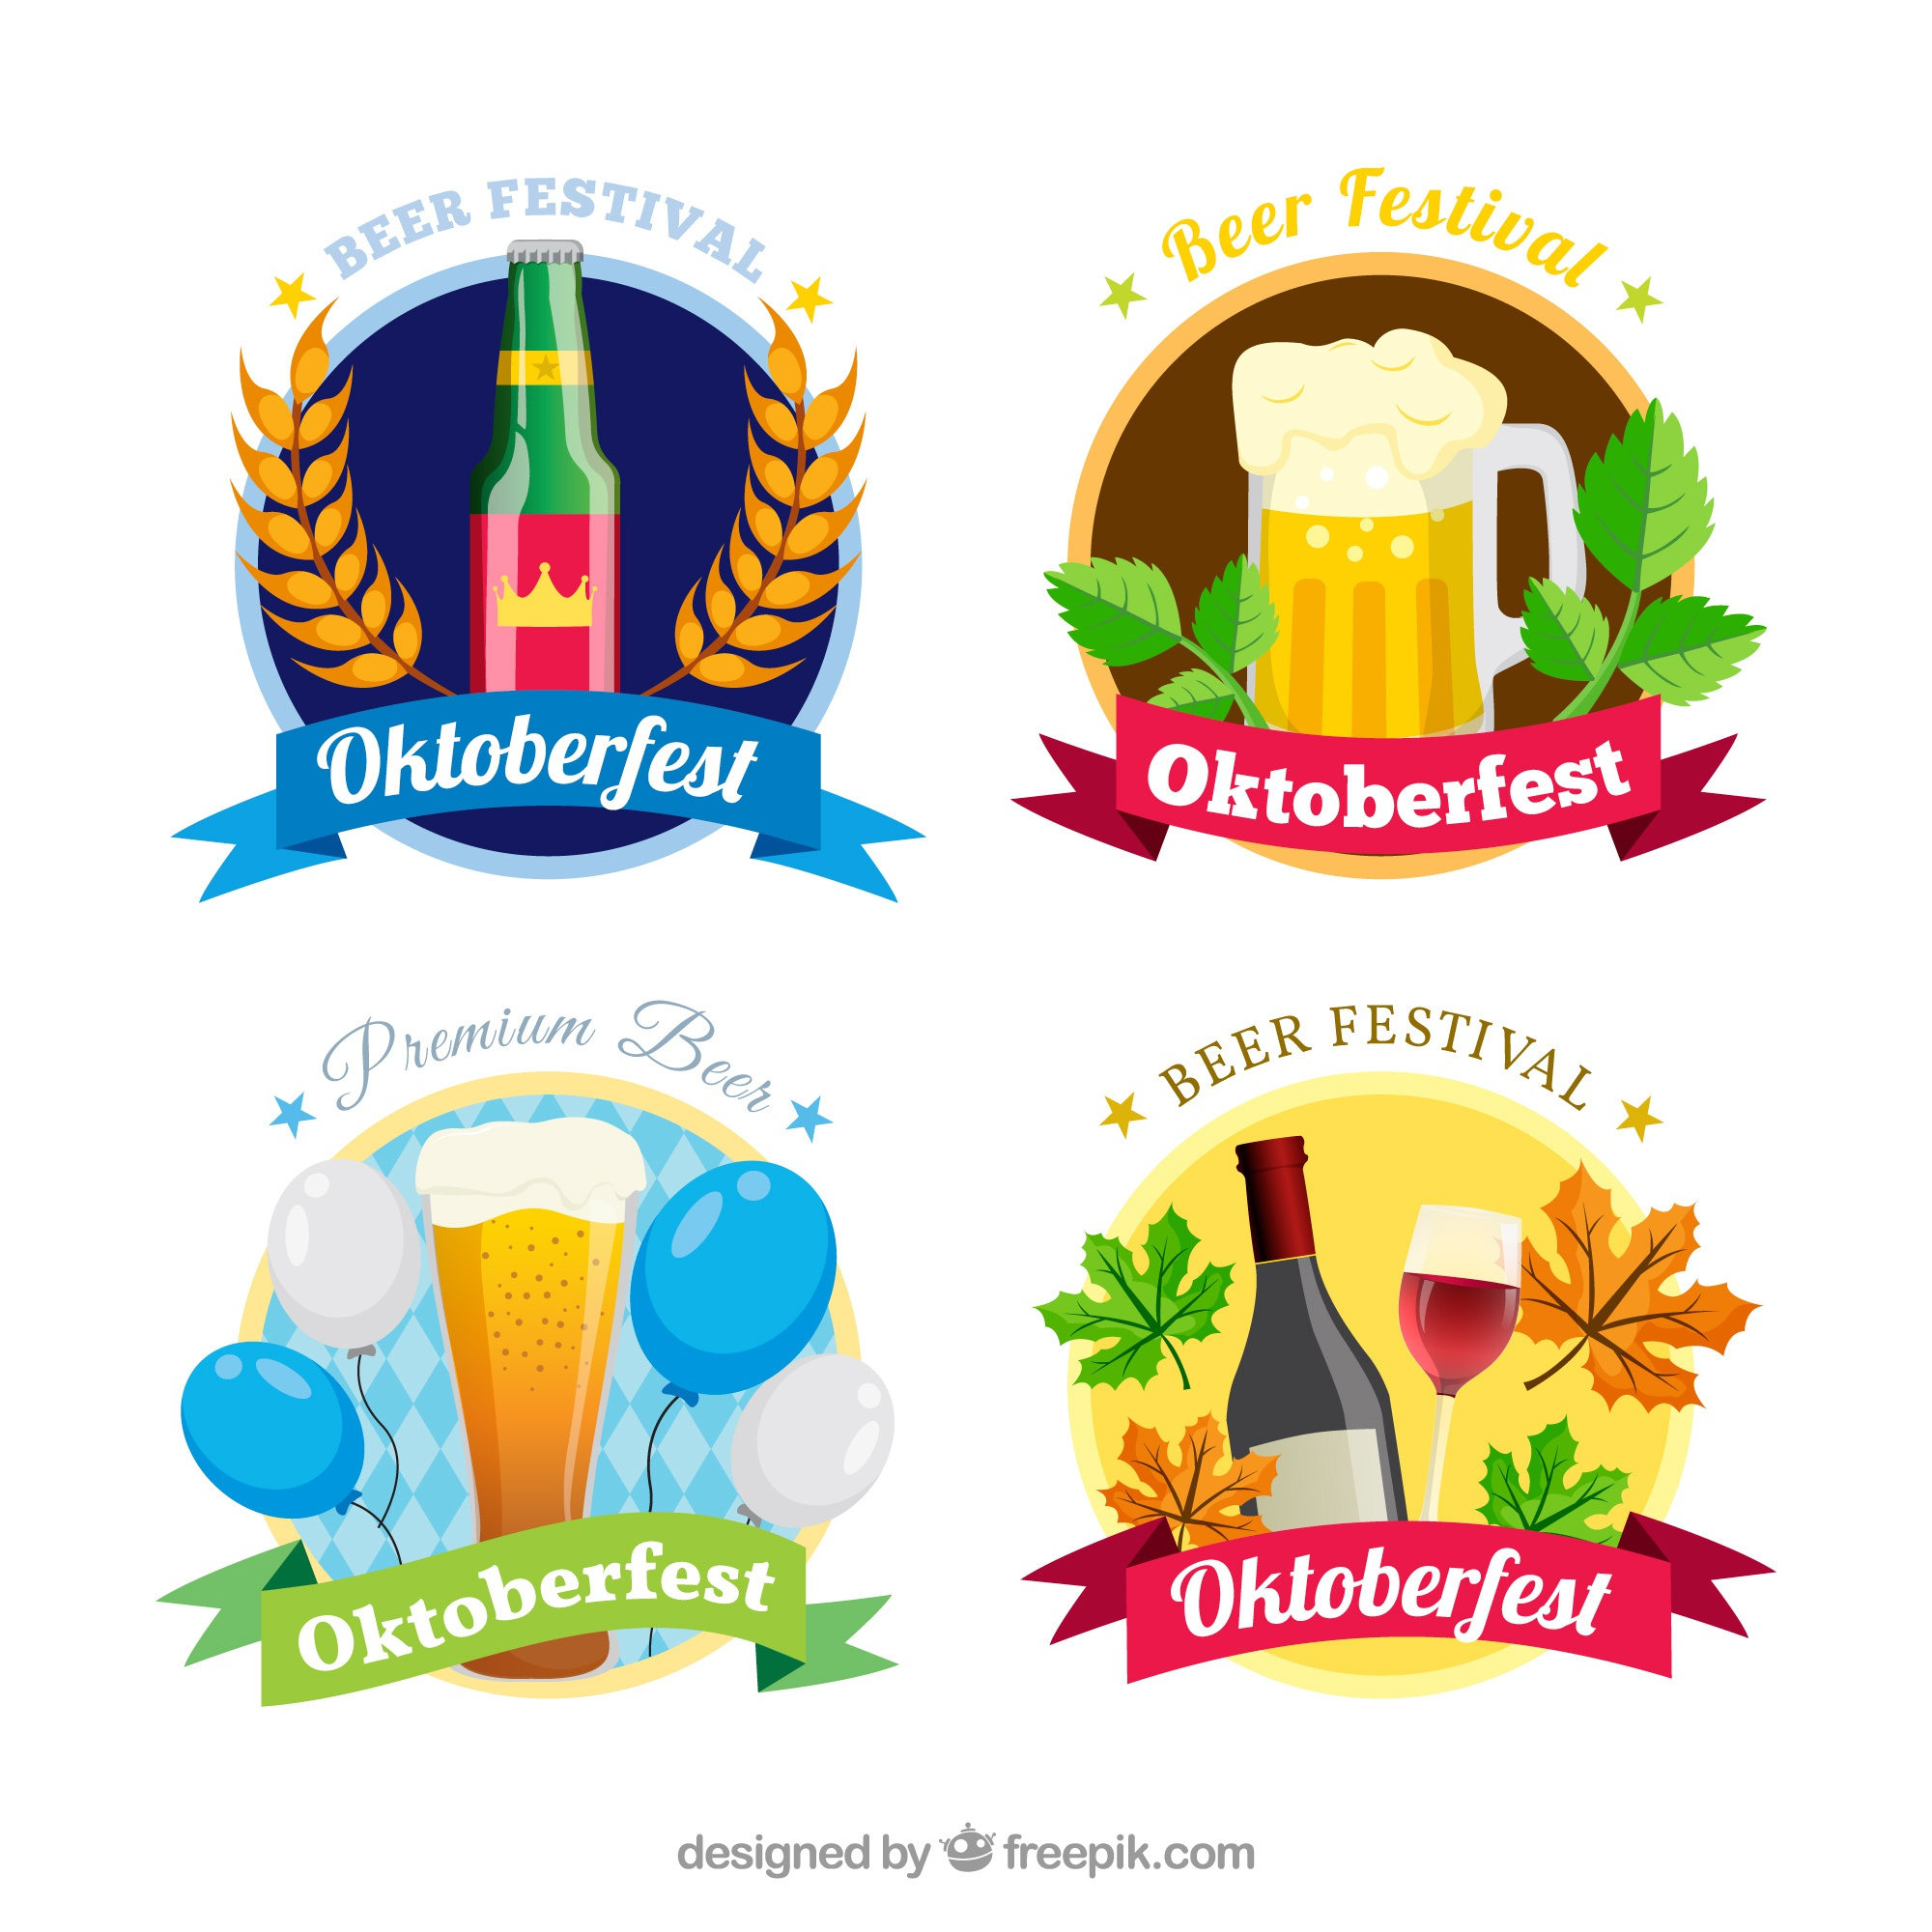 oktoberfest stickers set